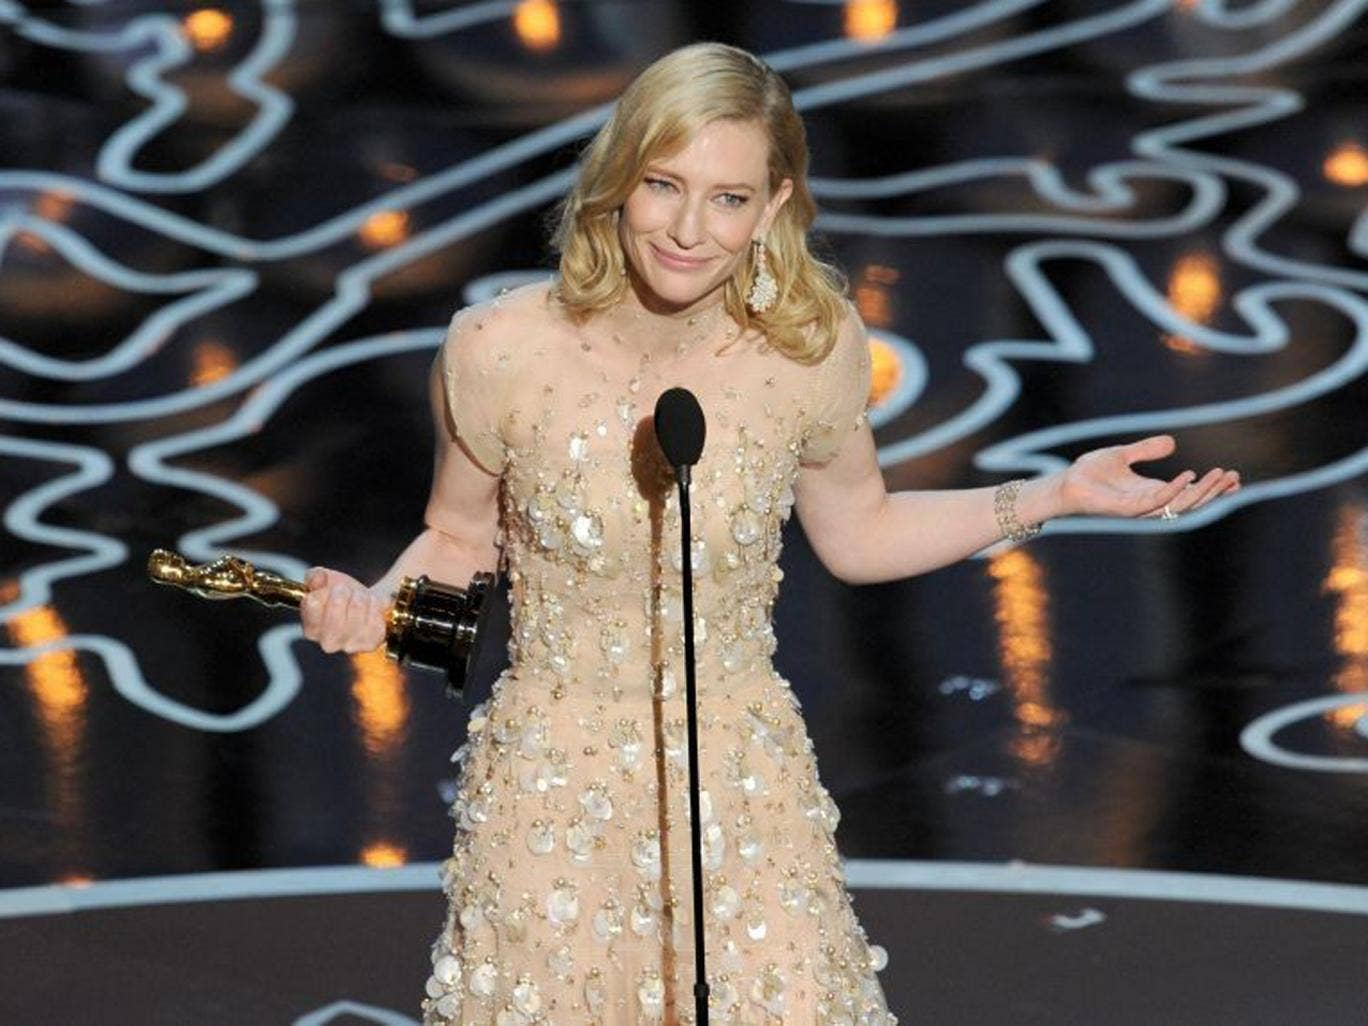 Cate Blanchett accepts her Best Actress Oscar and speaks about films with females at the centre